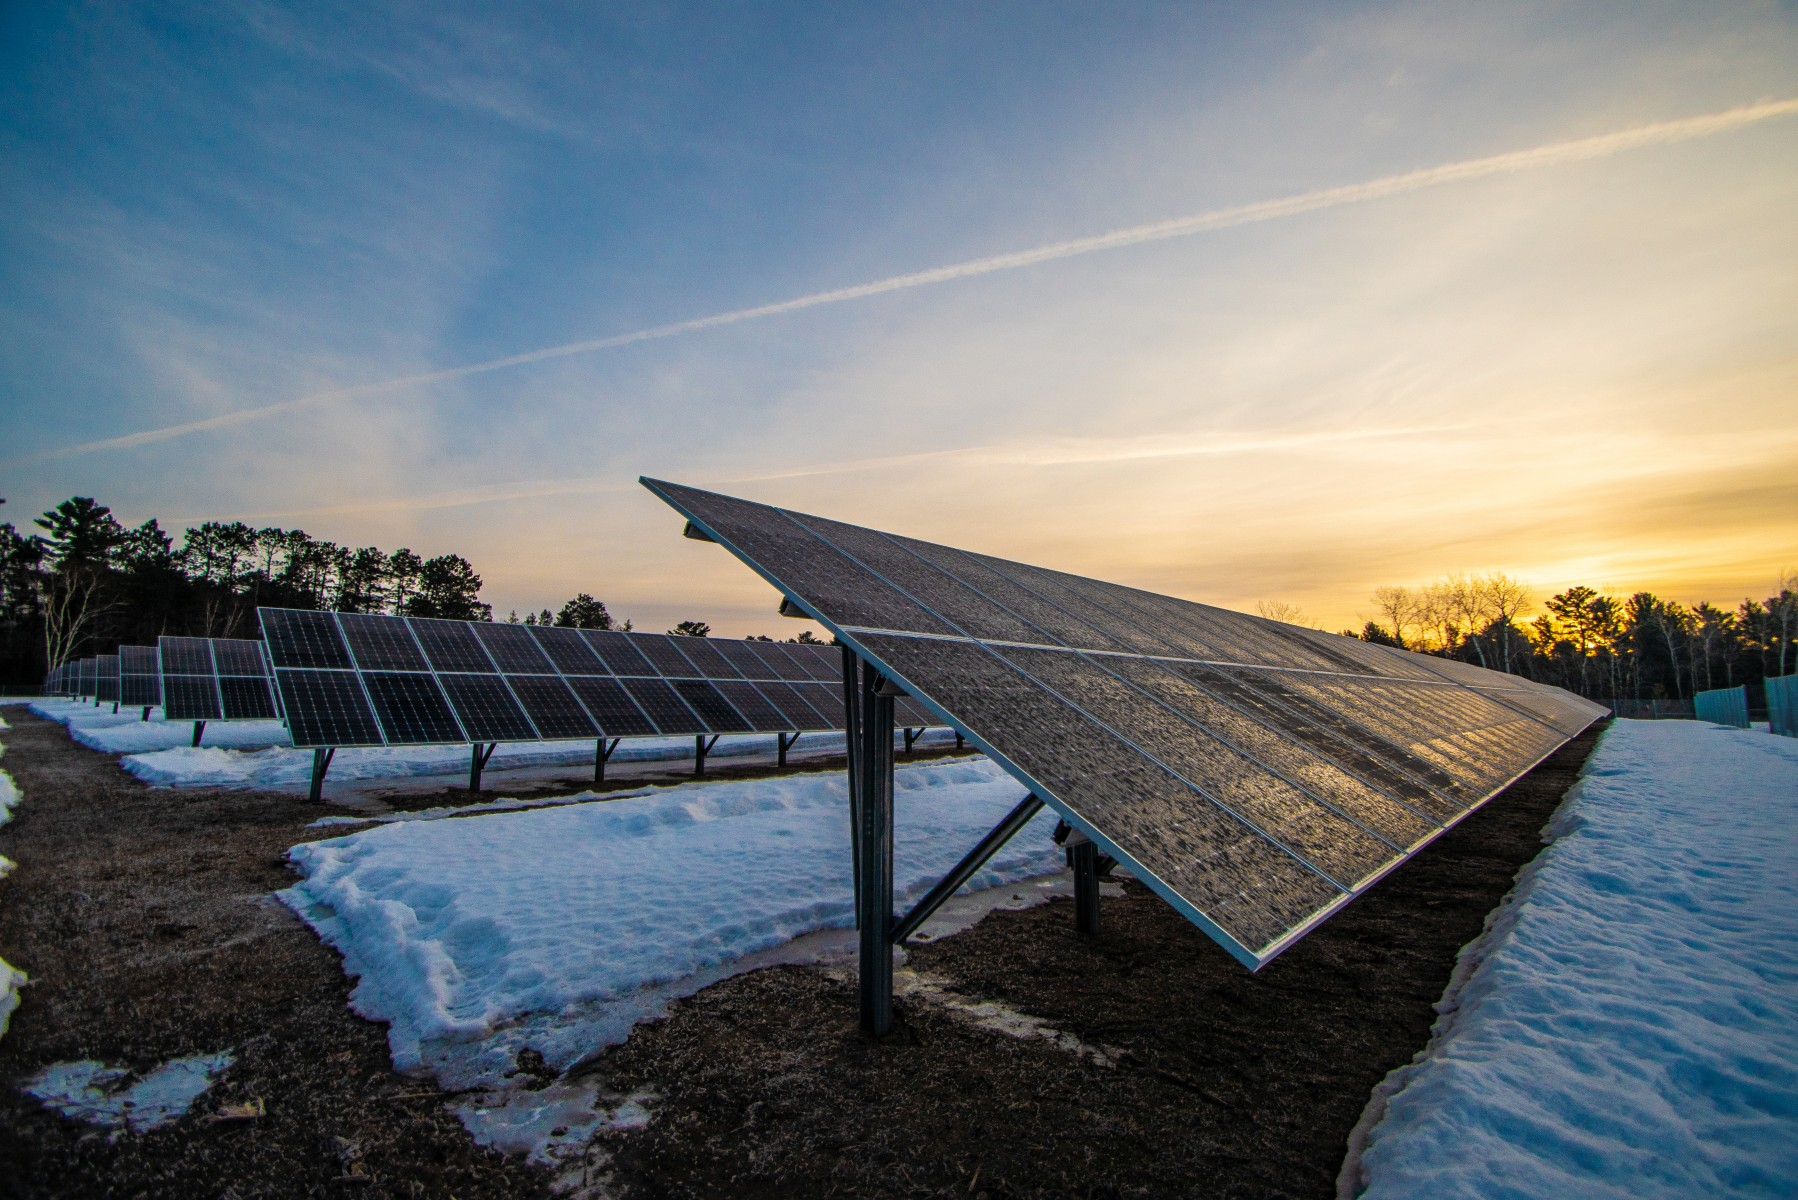 The largest school solar project of its kind, the system is anticipated to produce roughly 1.14 million kWh annually, or 80 percent of the Pine River-Backus School District's electricity load.